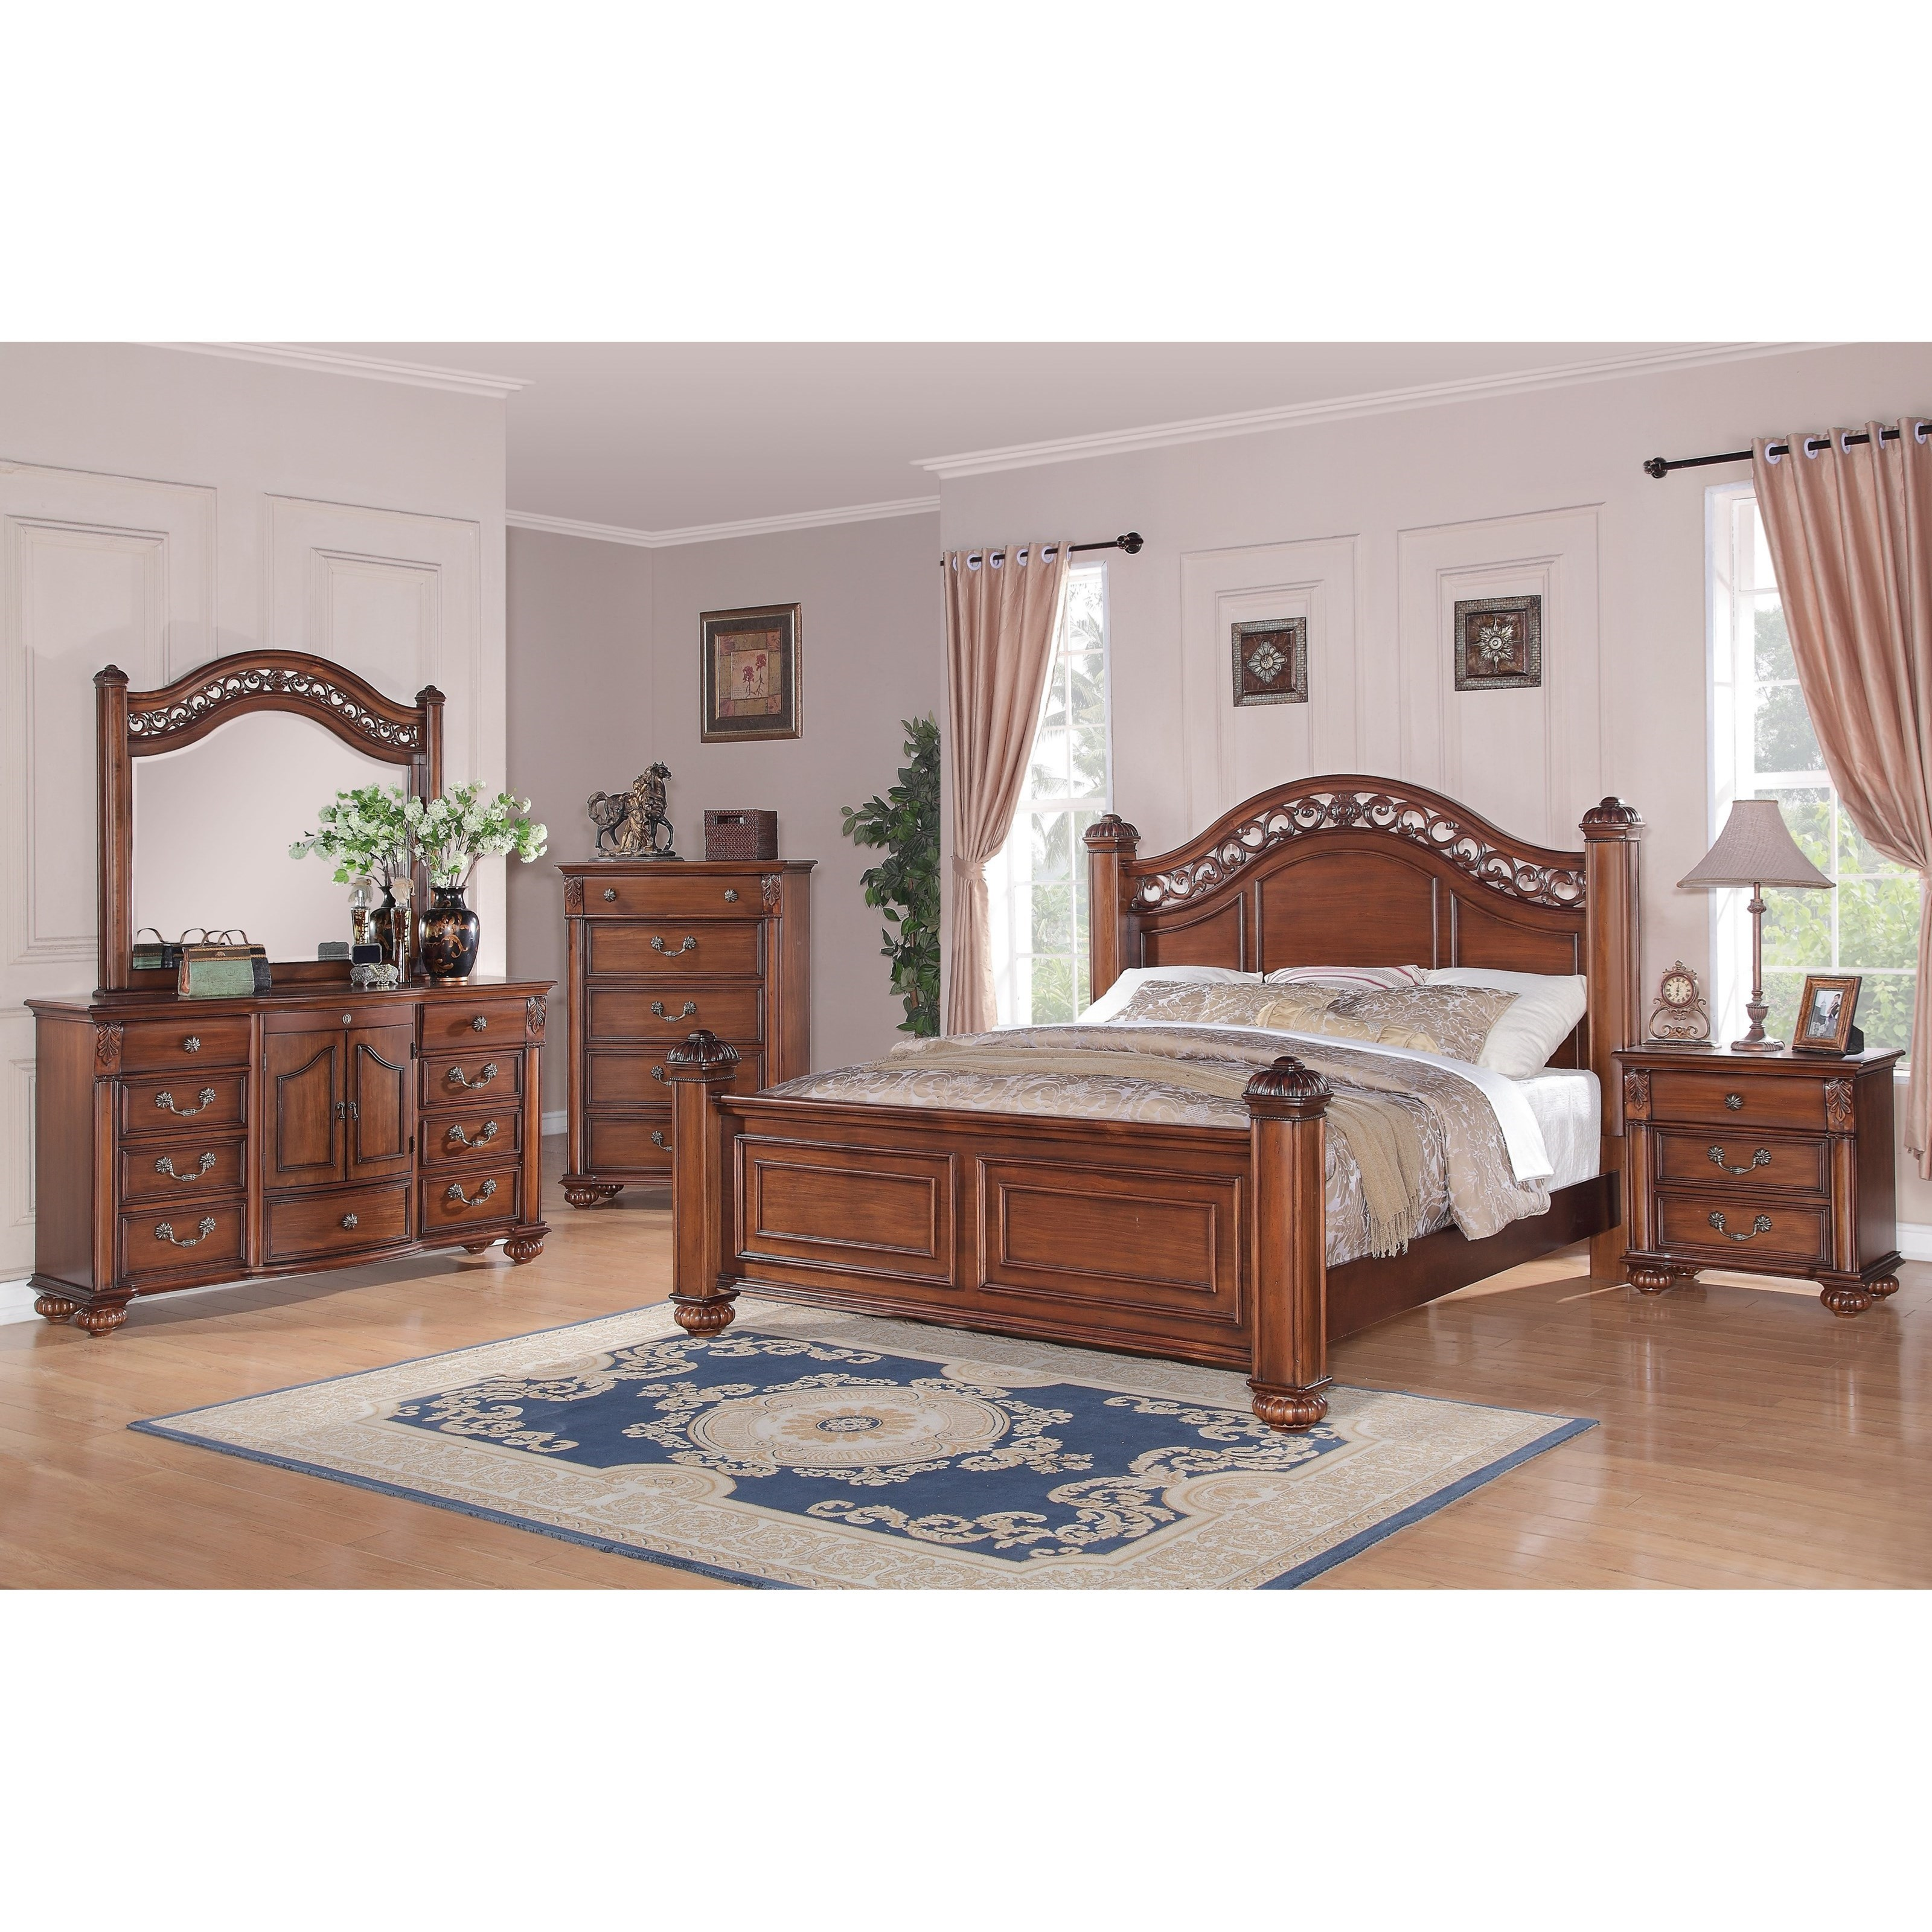 Queen Poster 5-Piece Bedroom Set